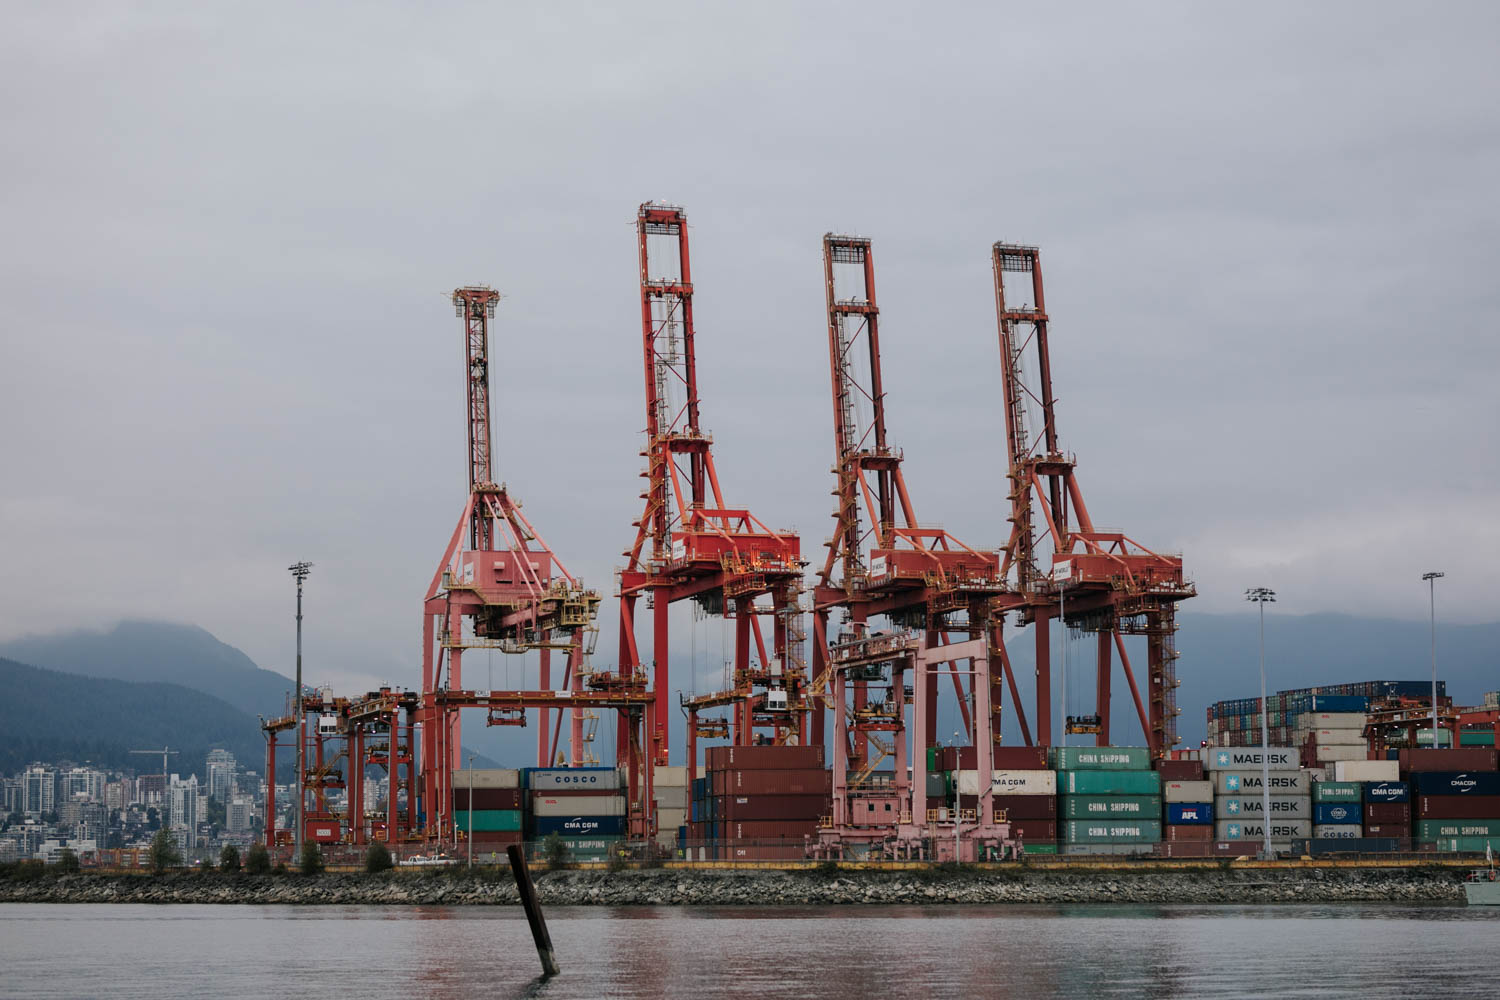 View of mountains and shipping yard from Crab Park in Vancouver